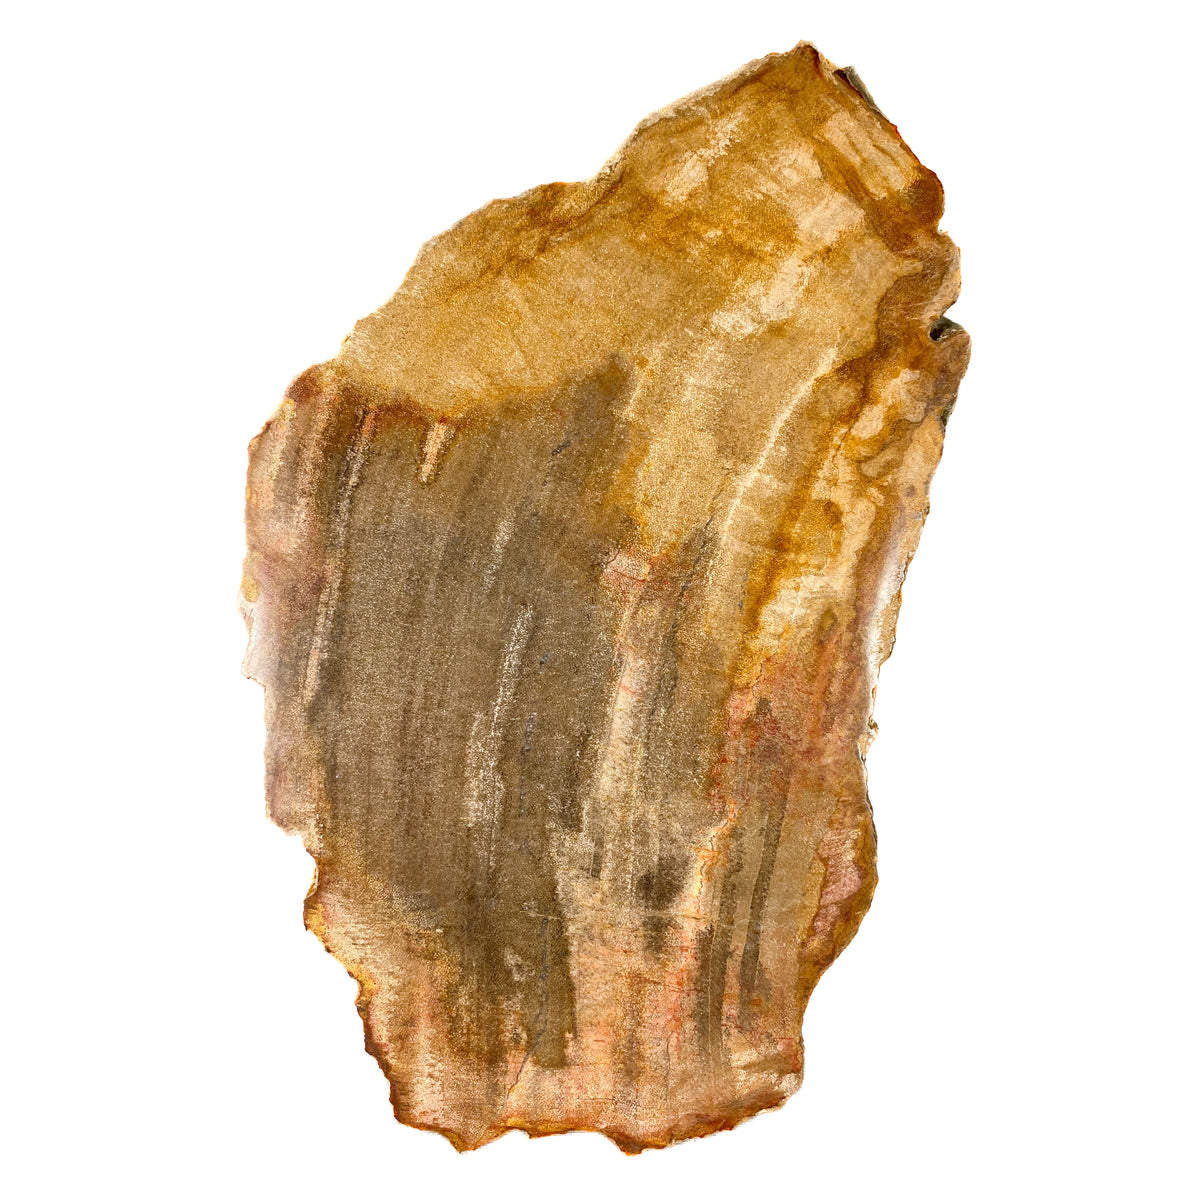 Petrified Wood Slice from Indonesia